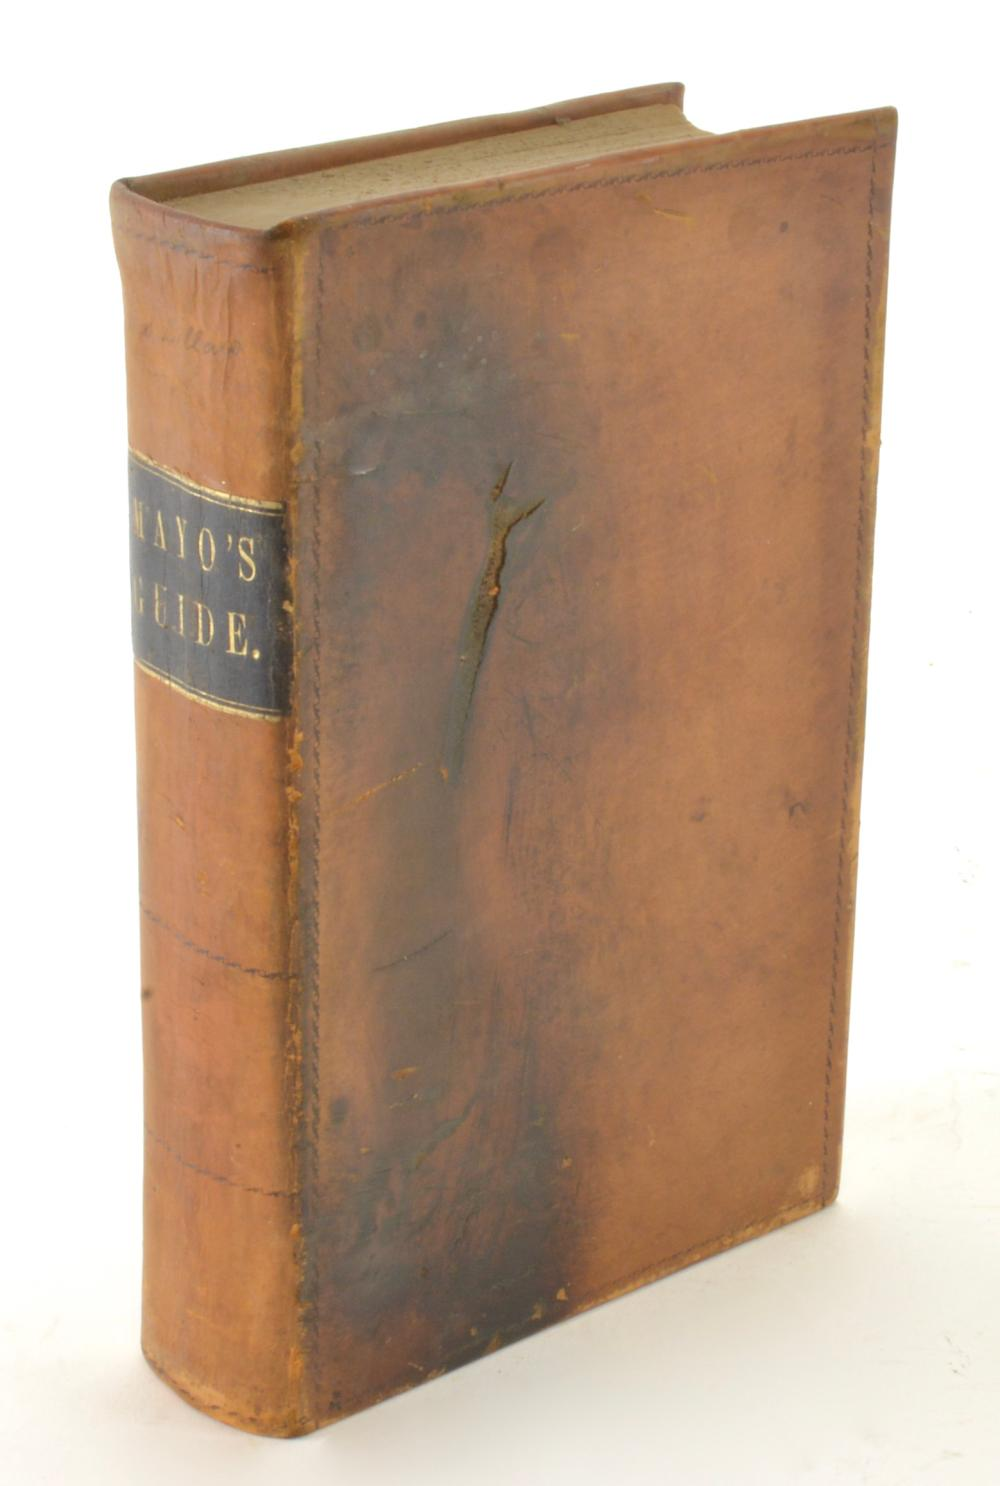 A Guide To Magistrates Practical Forms By Joseph Mayo 1860